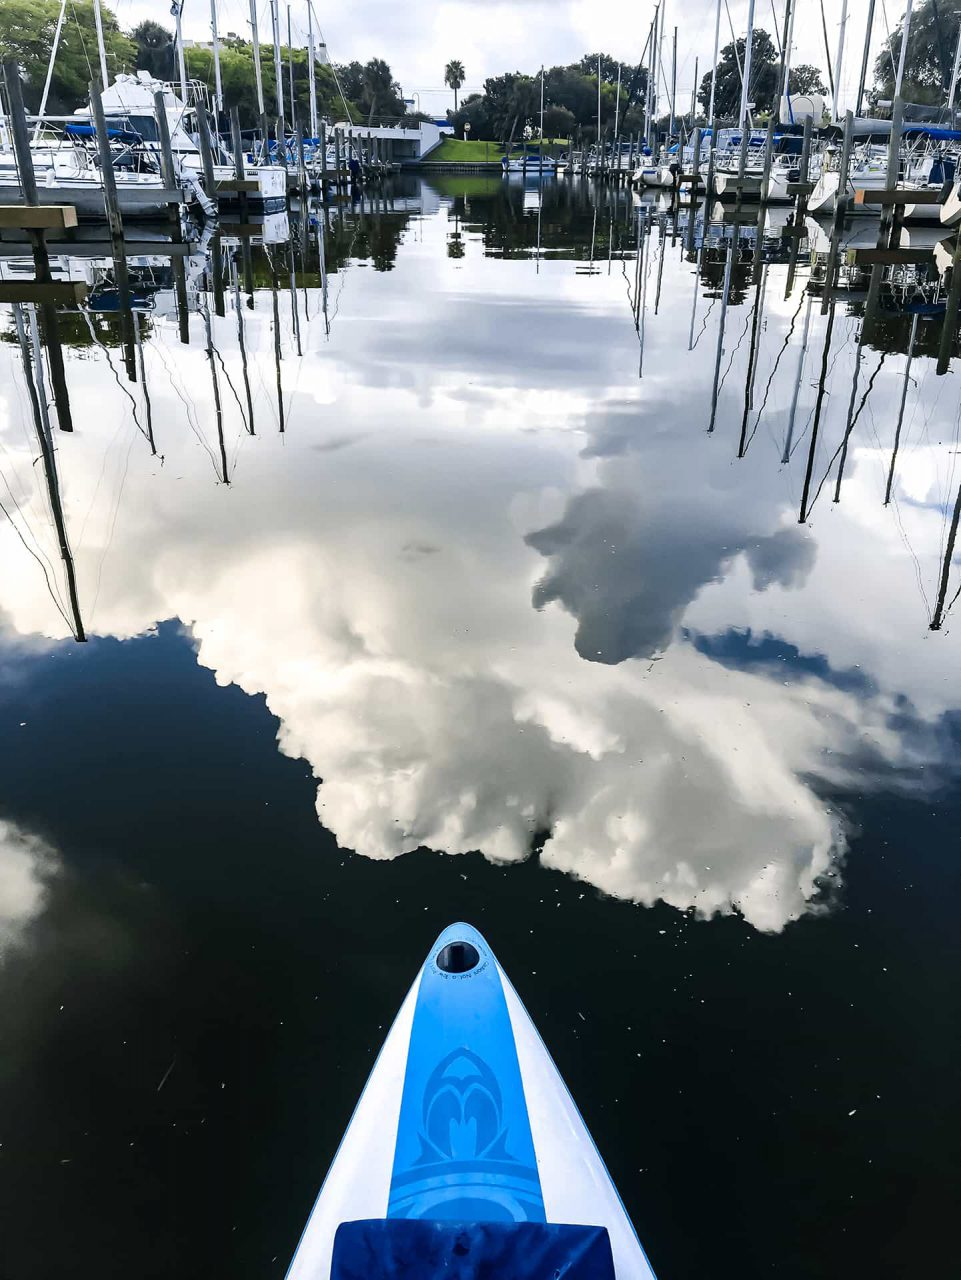 Cloud reflection on water while paddleboarding